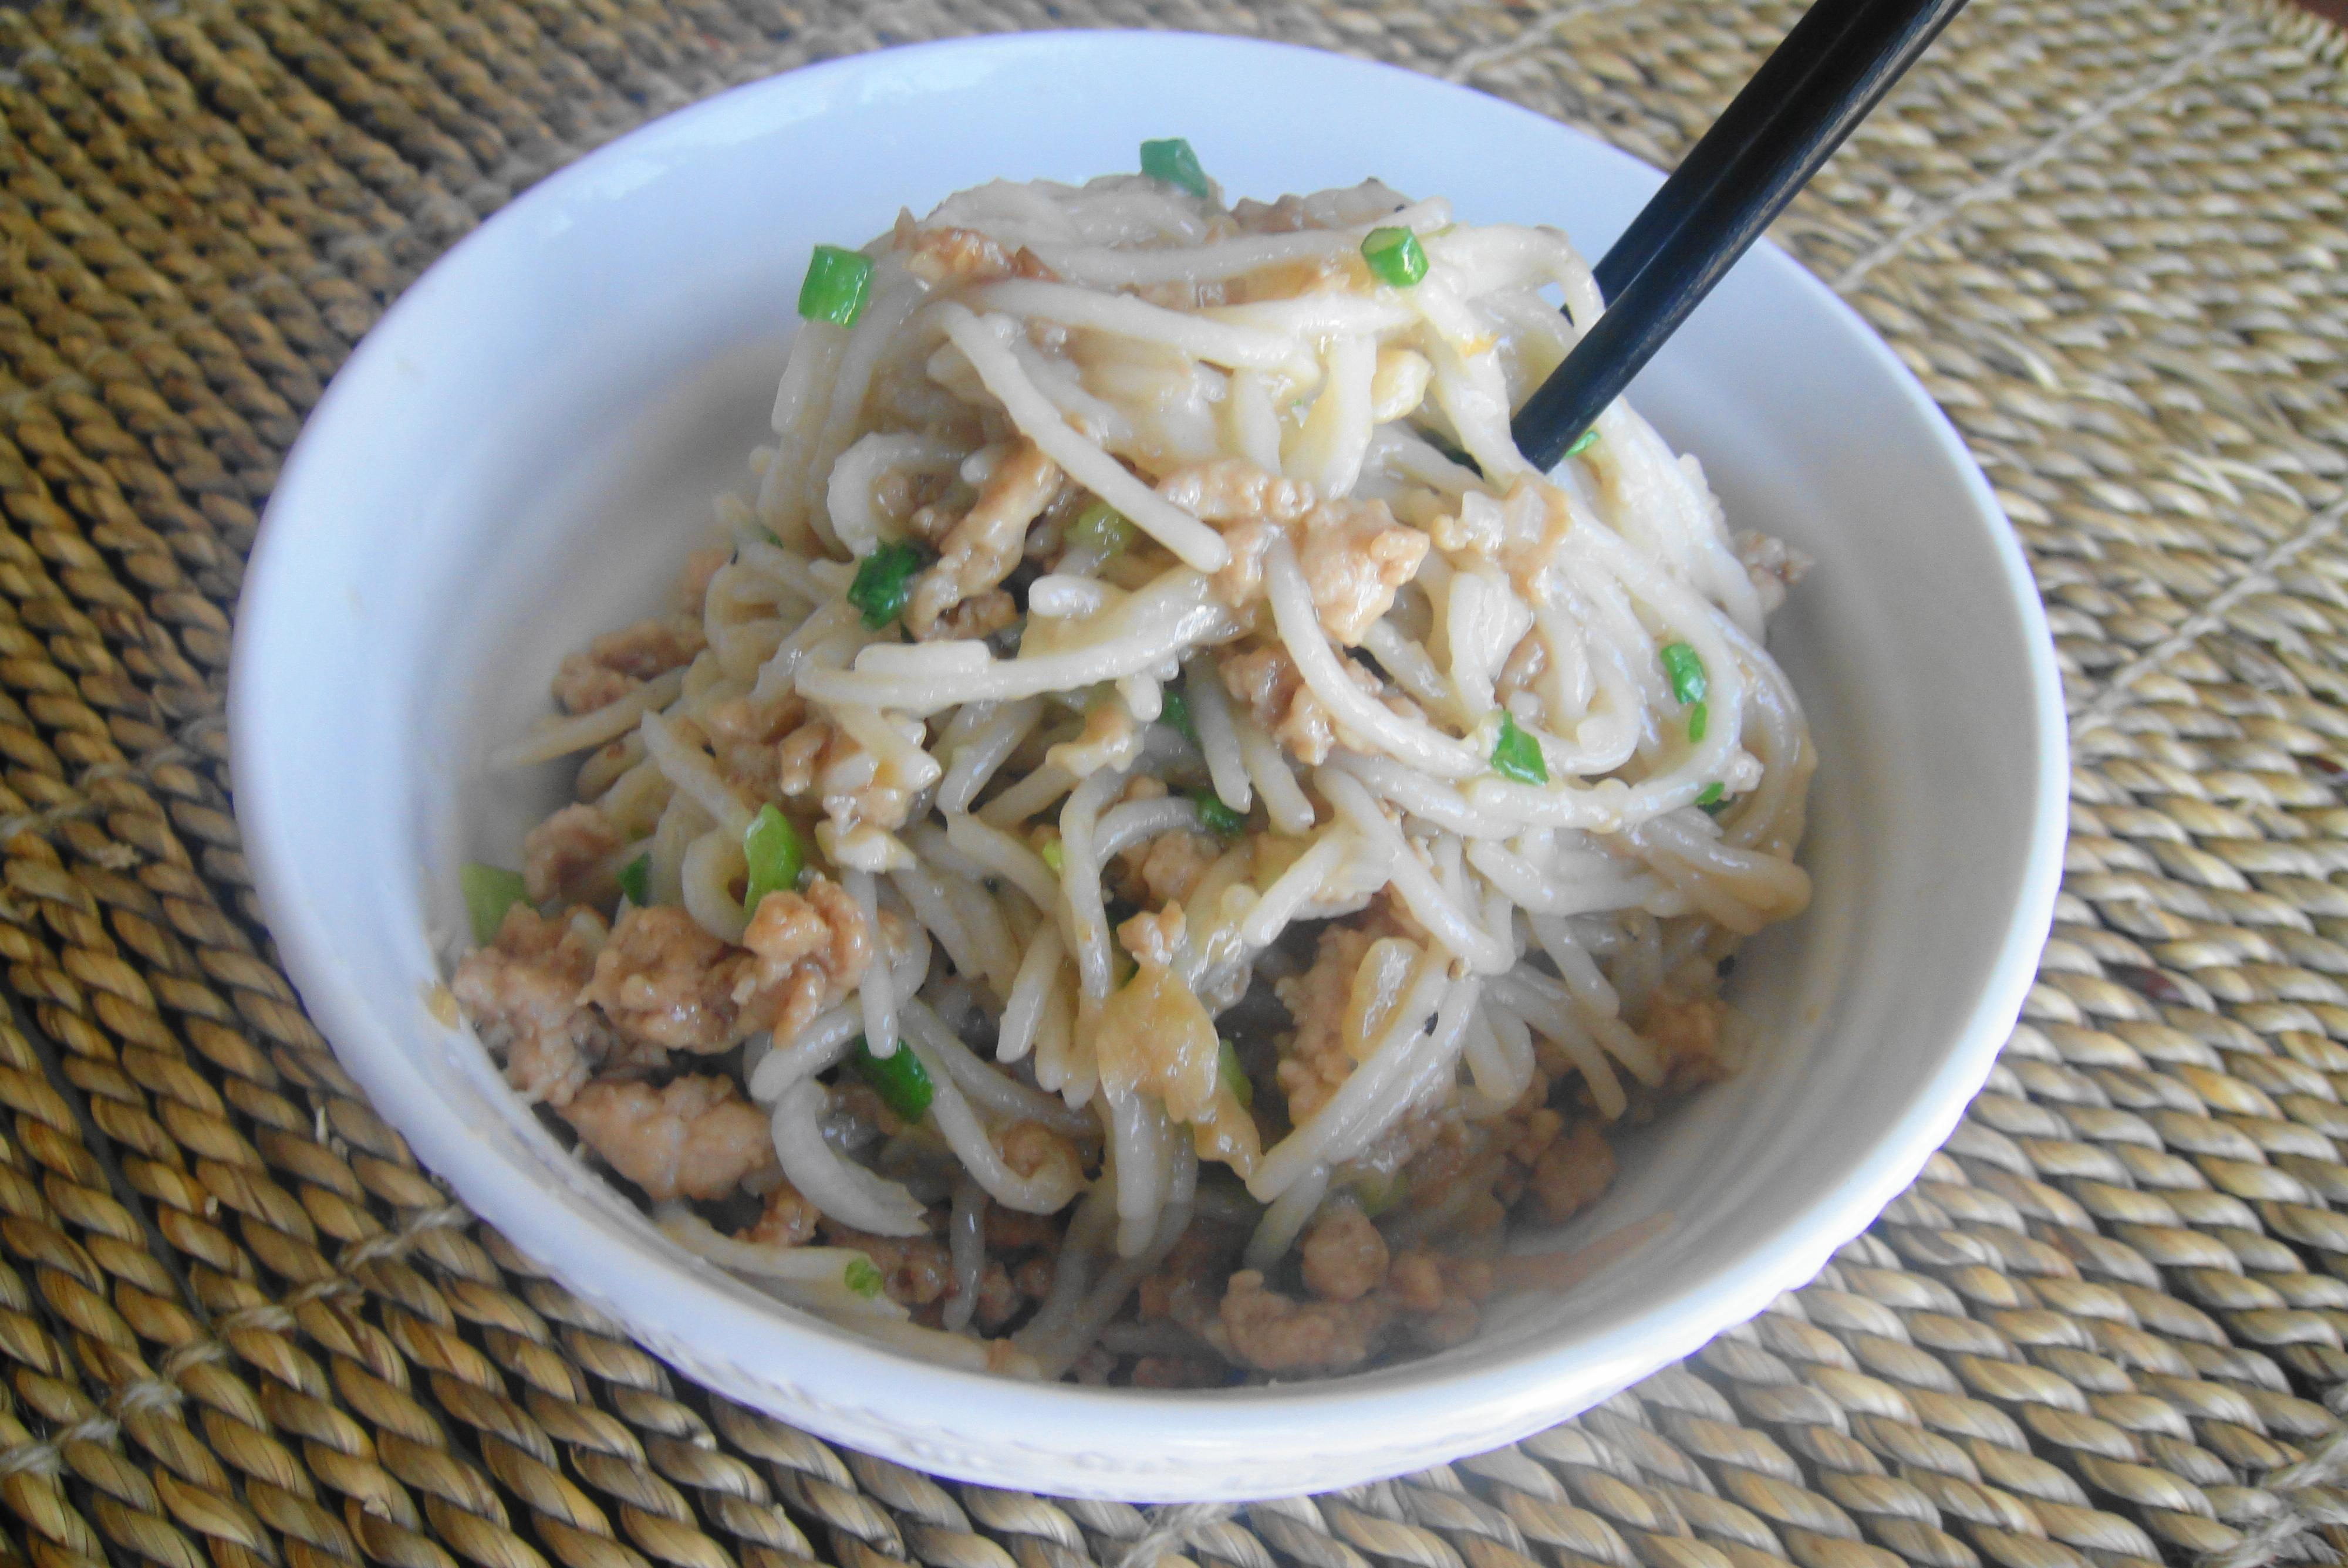 Ahpoh's Tossed Noodles (Yam Mein)